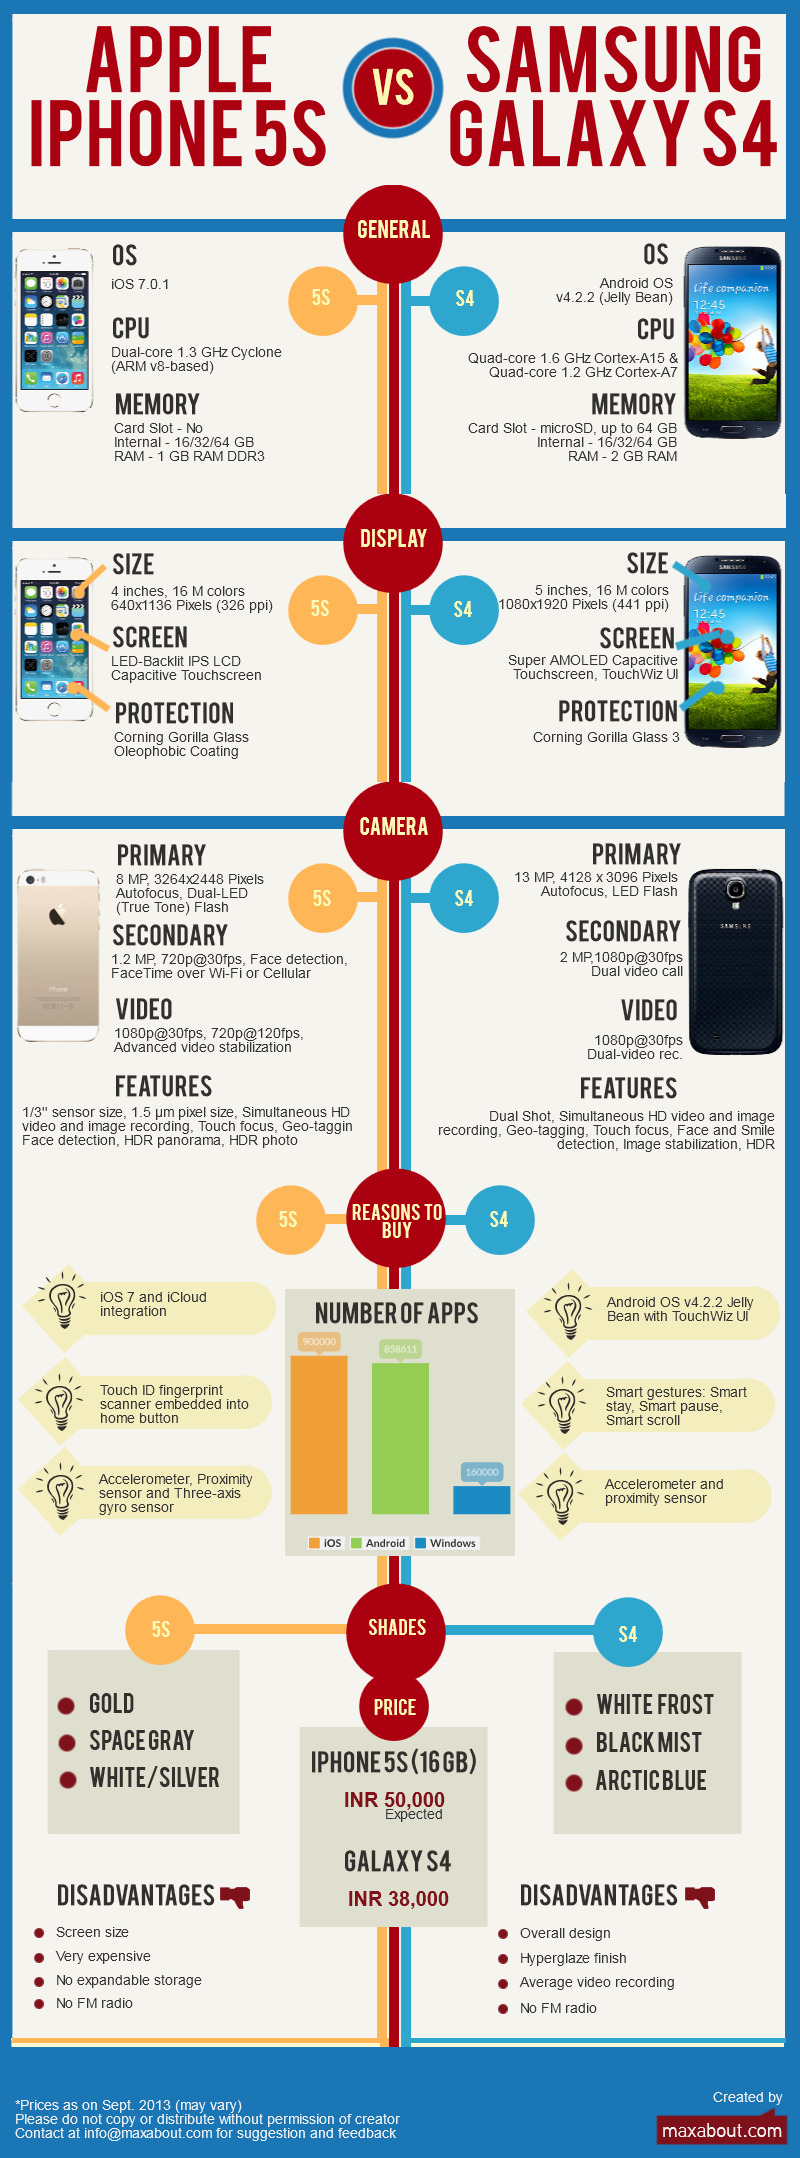 internetjar blog iphone 5s vs galaxy s4 infographic